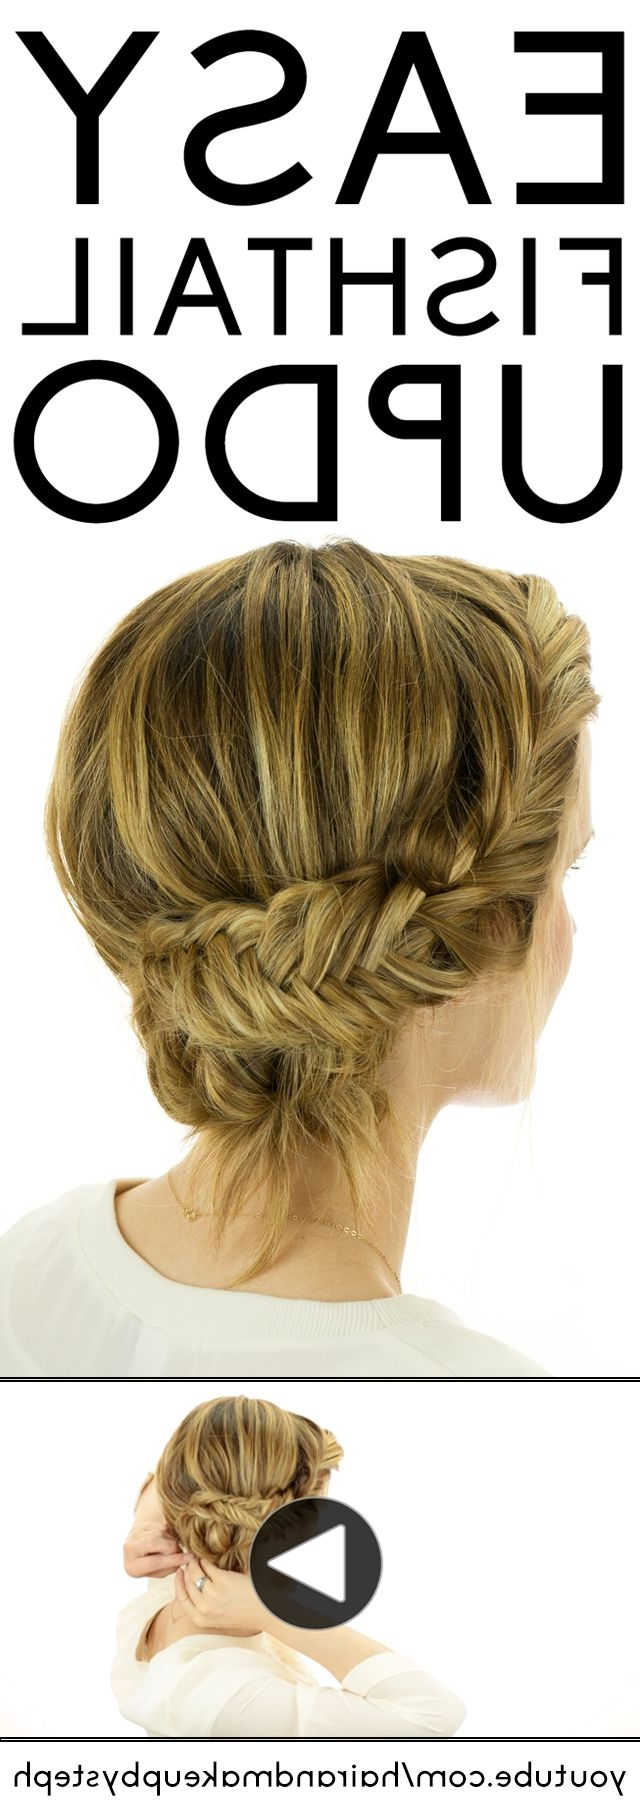 Newest Easy Casual Braided Updo Hairstyles Regarding 20 Exciting New Intricate Braid Updo Hairstyles – Popular Haircuts (View 12 of 15)